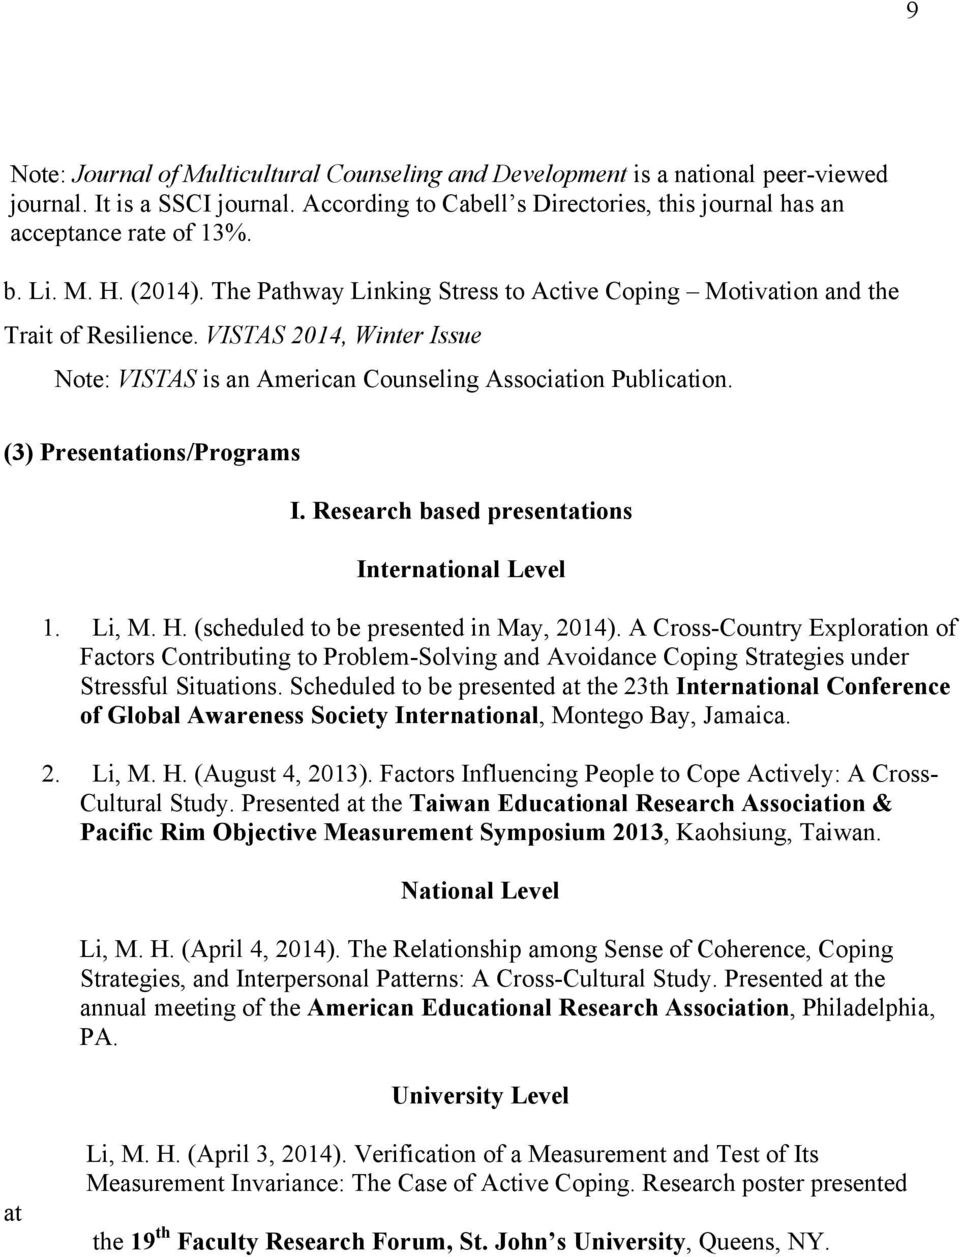 (3) Presentations/Programs I. Research based presentations International Level 1. Li, M. H. (scheduled to be presented in May, 2014).